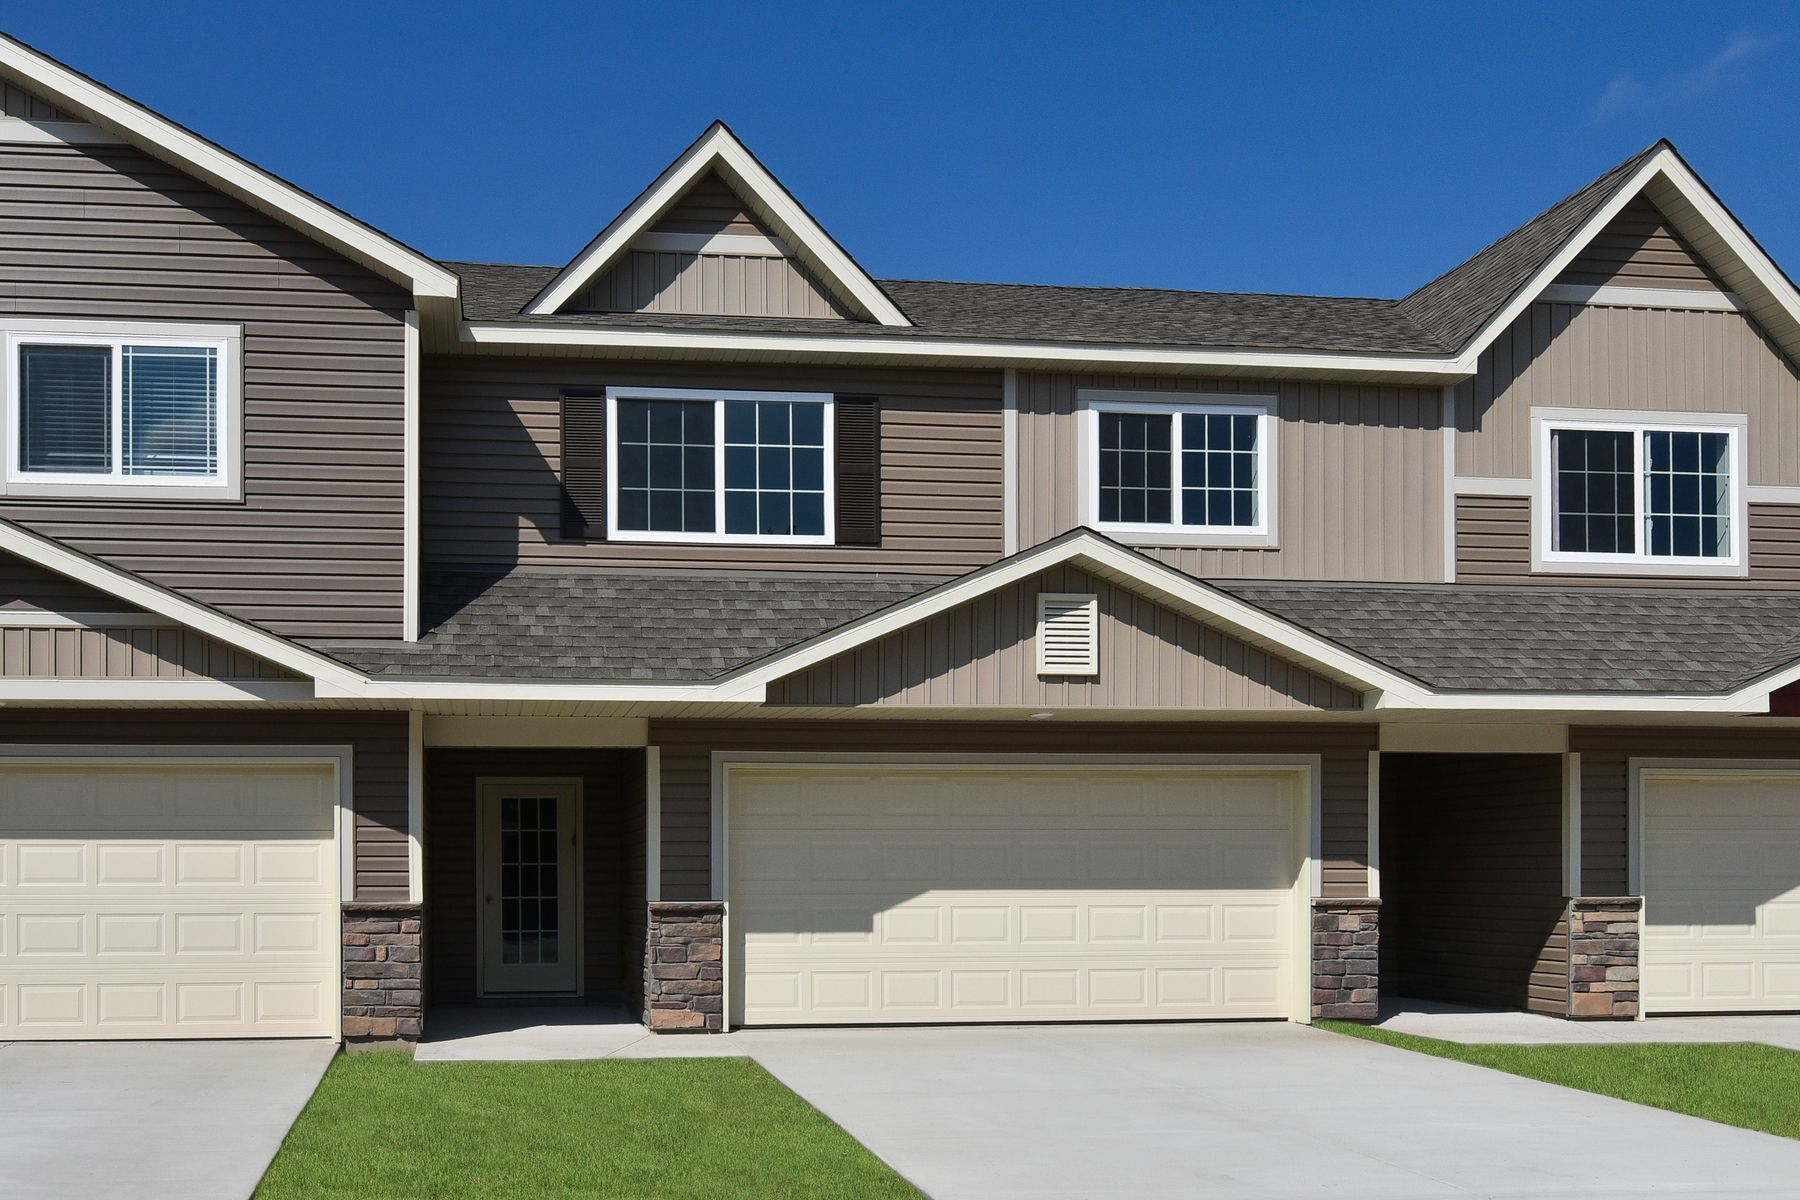 LGI Homes at Carlisle Village:Make a positive first impression on guests with charming exterior featuring stone accents and a welcoming entryway.